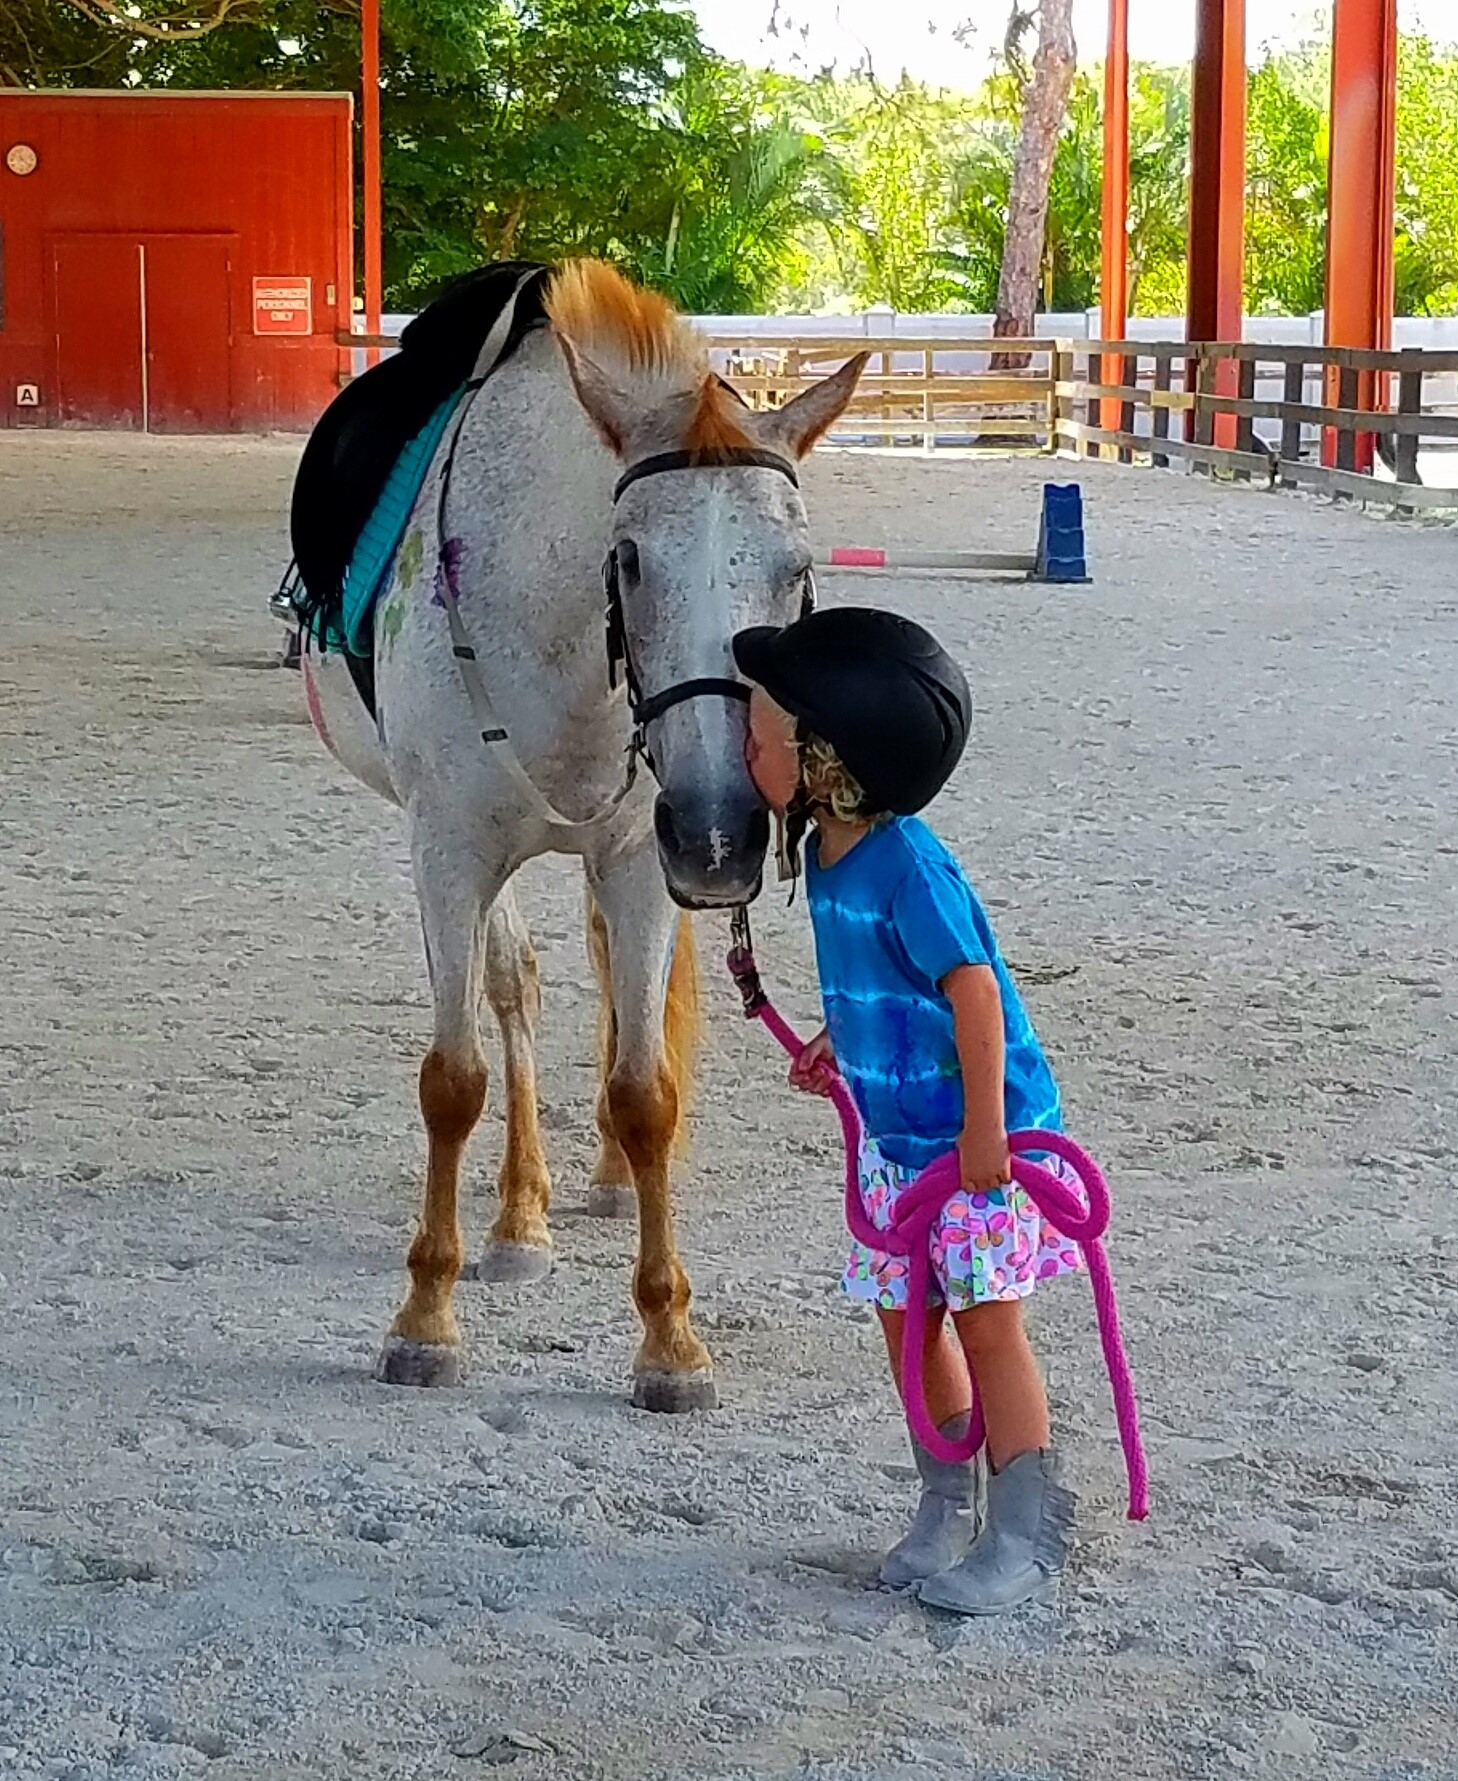 The Community Foundation of Collier County is helping tackle mental health care by funding initiatives such as the Naples Therapeutic Riding Center.